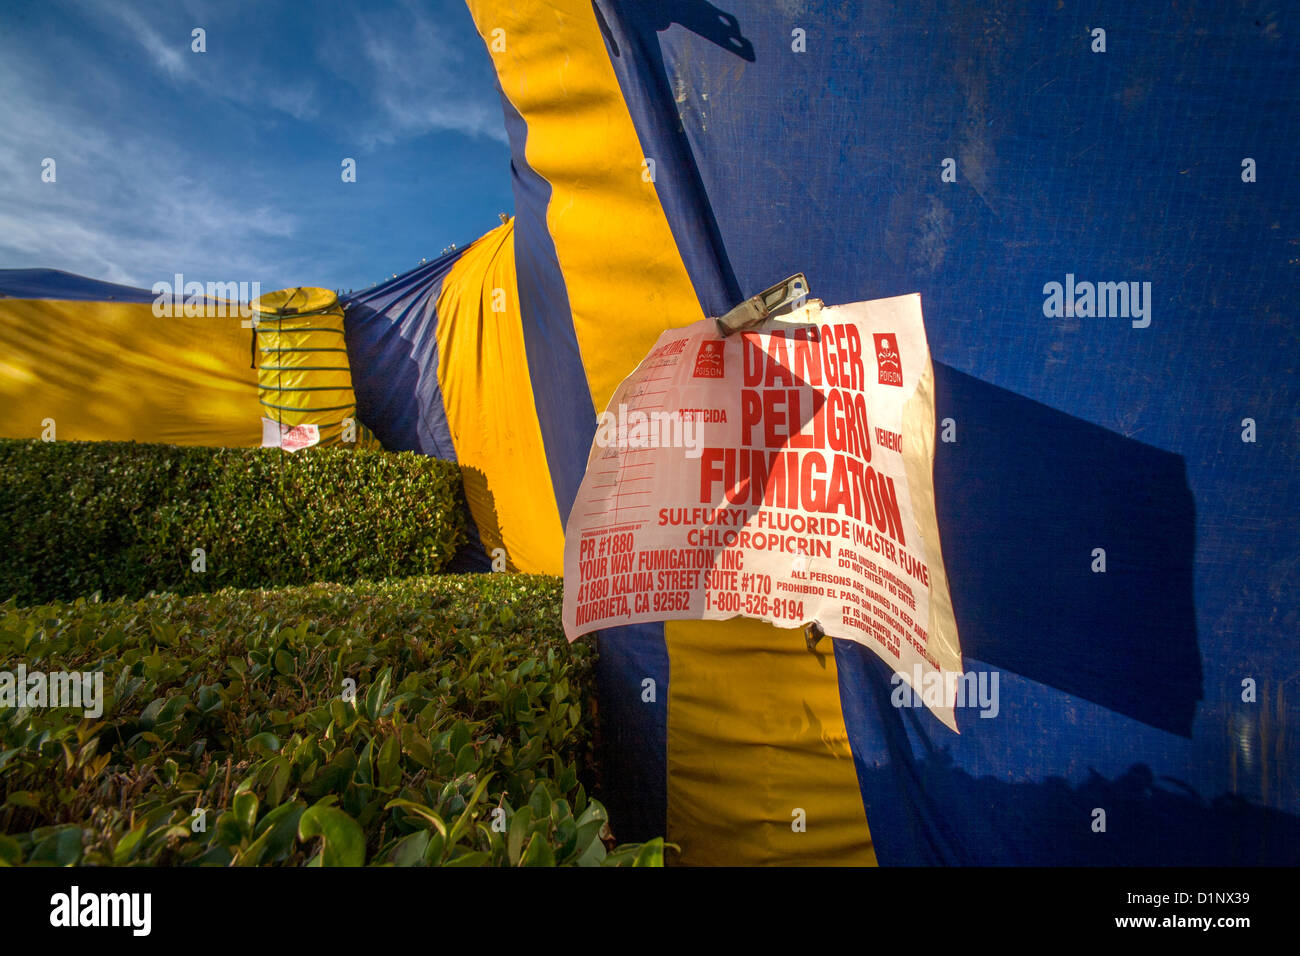 Sign outside a gas-proof tent warns against dangers sulfur fluoride chloropicrin poison gas during fumigation to kill termites. & Sign outside a gas-proof tent warns against dangers sulfur ...